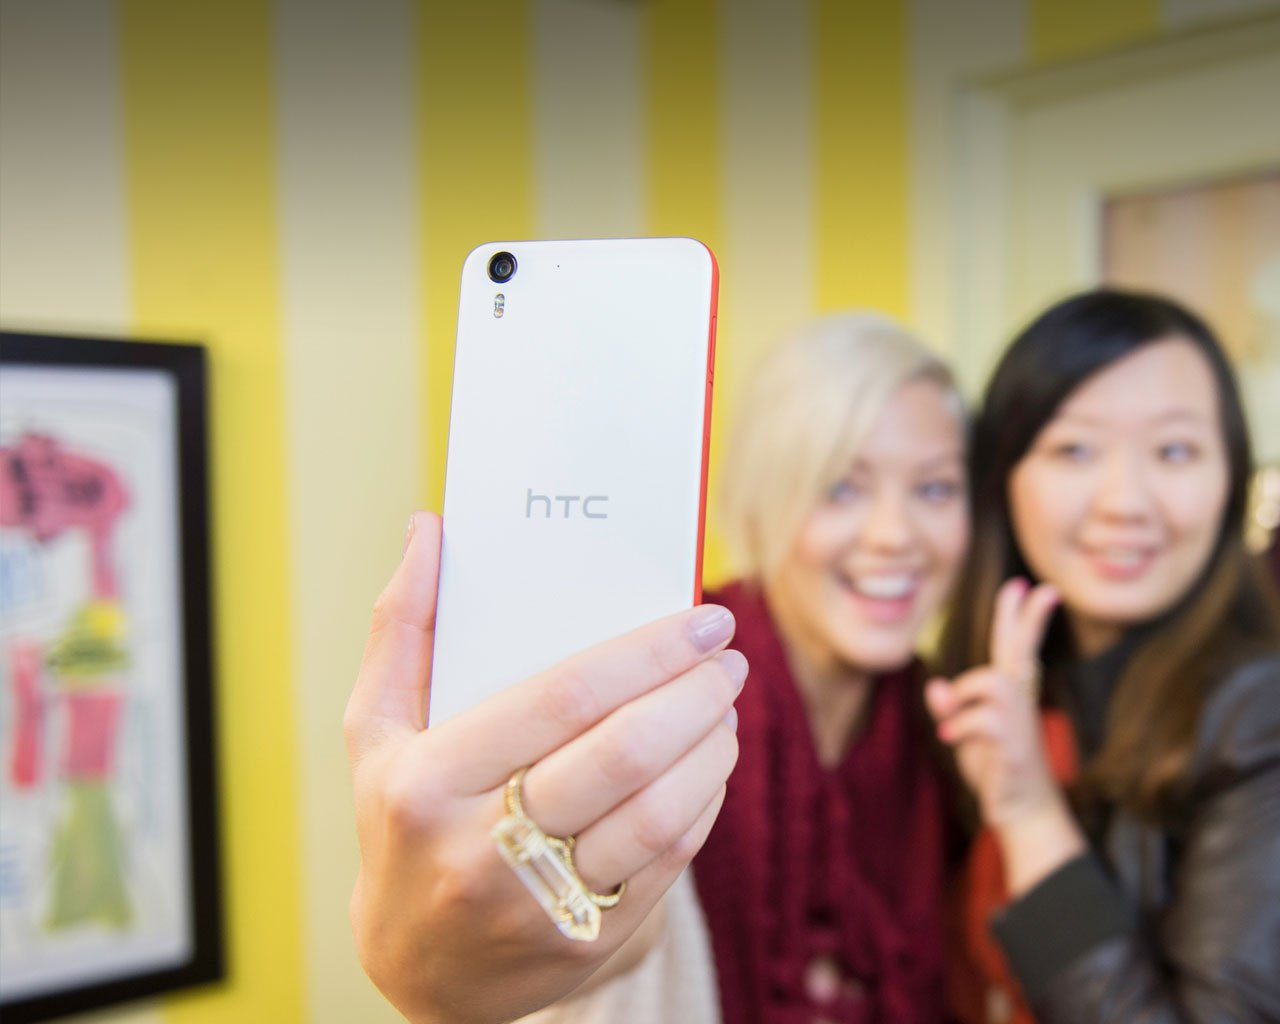 htc-desire-eye-reimagineyourselfies-us123.jpg